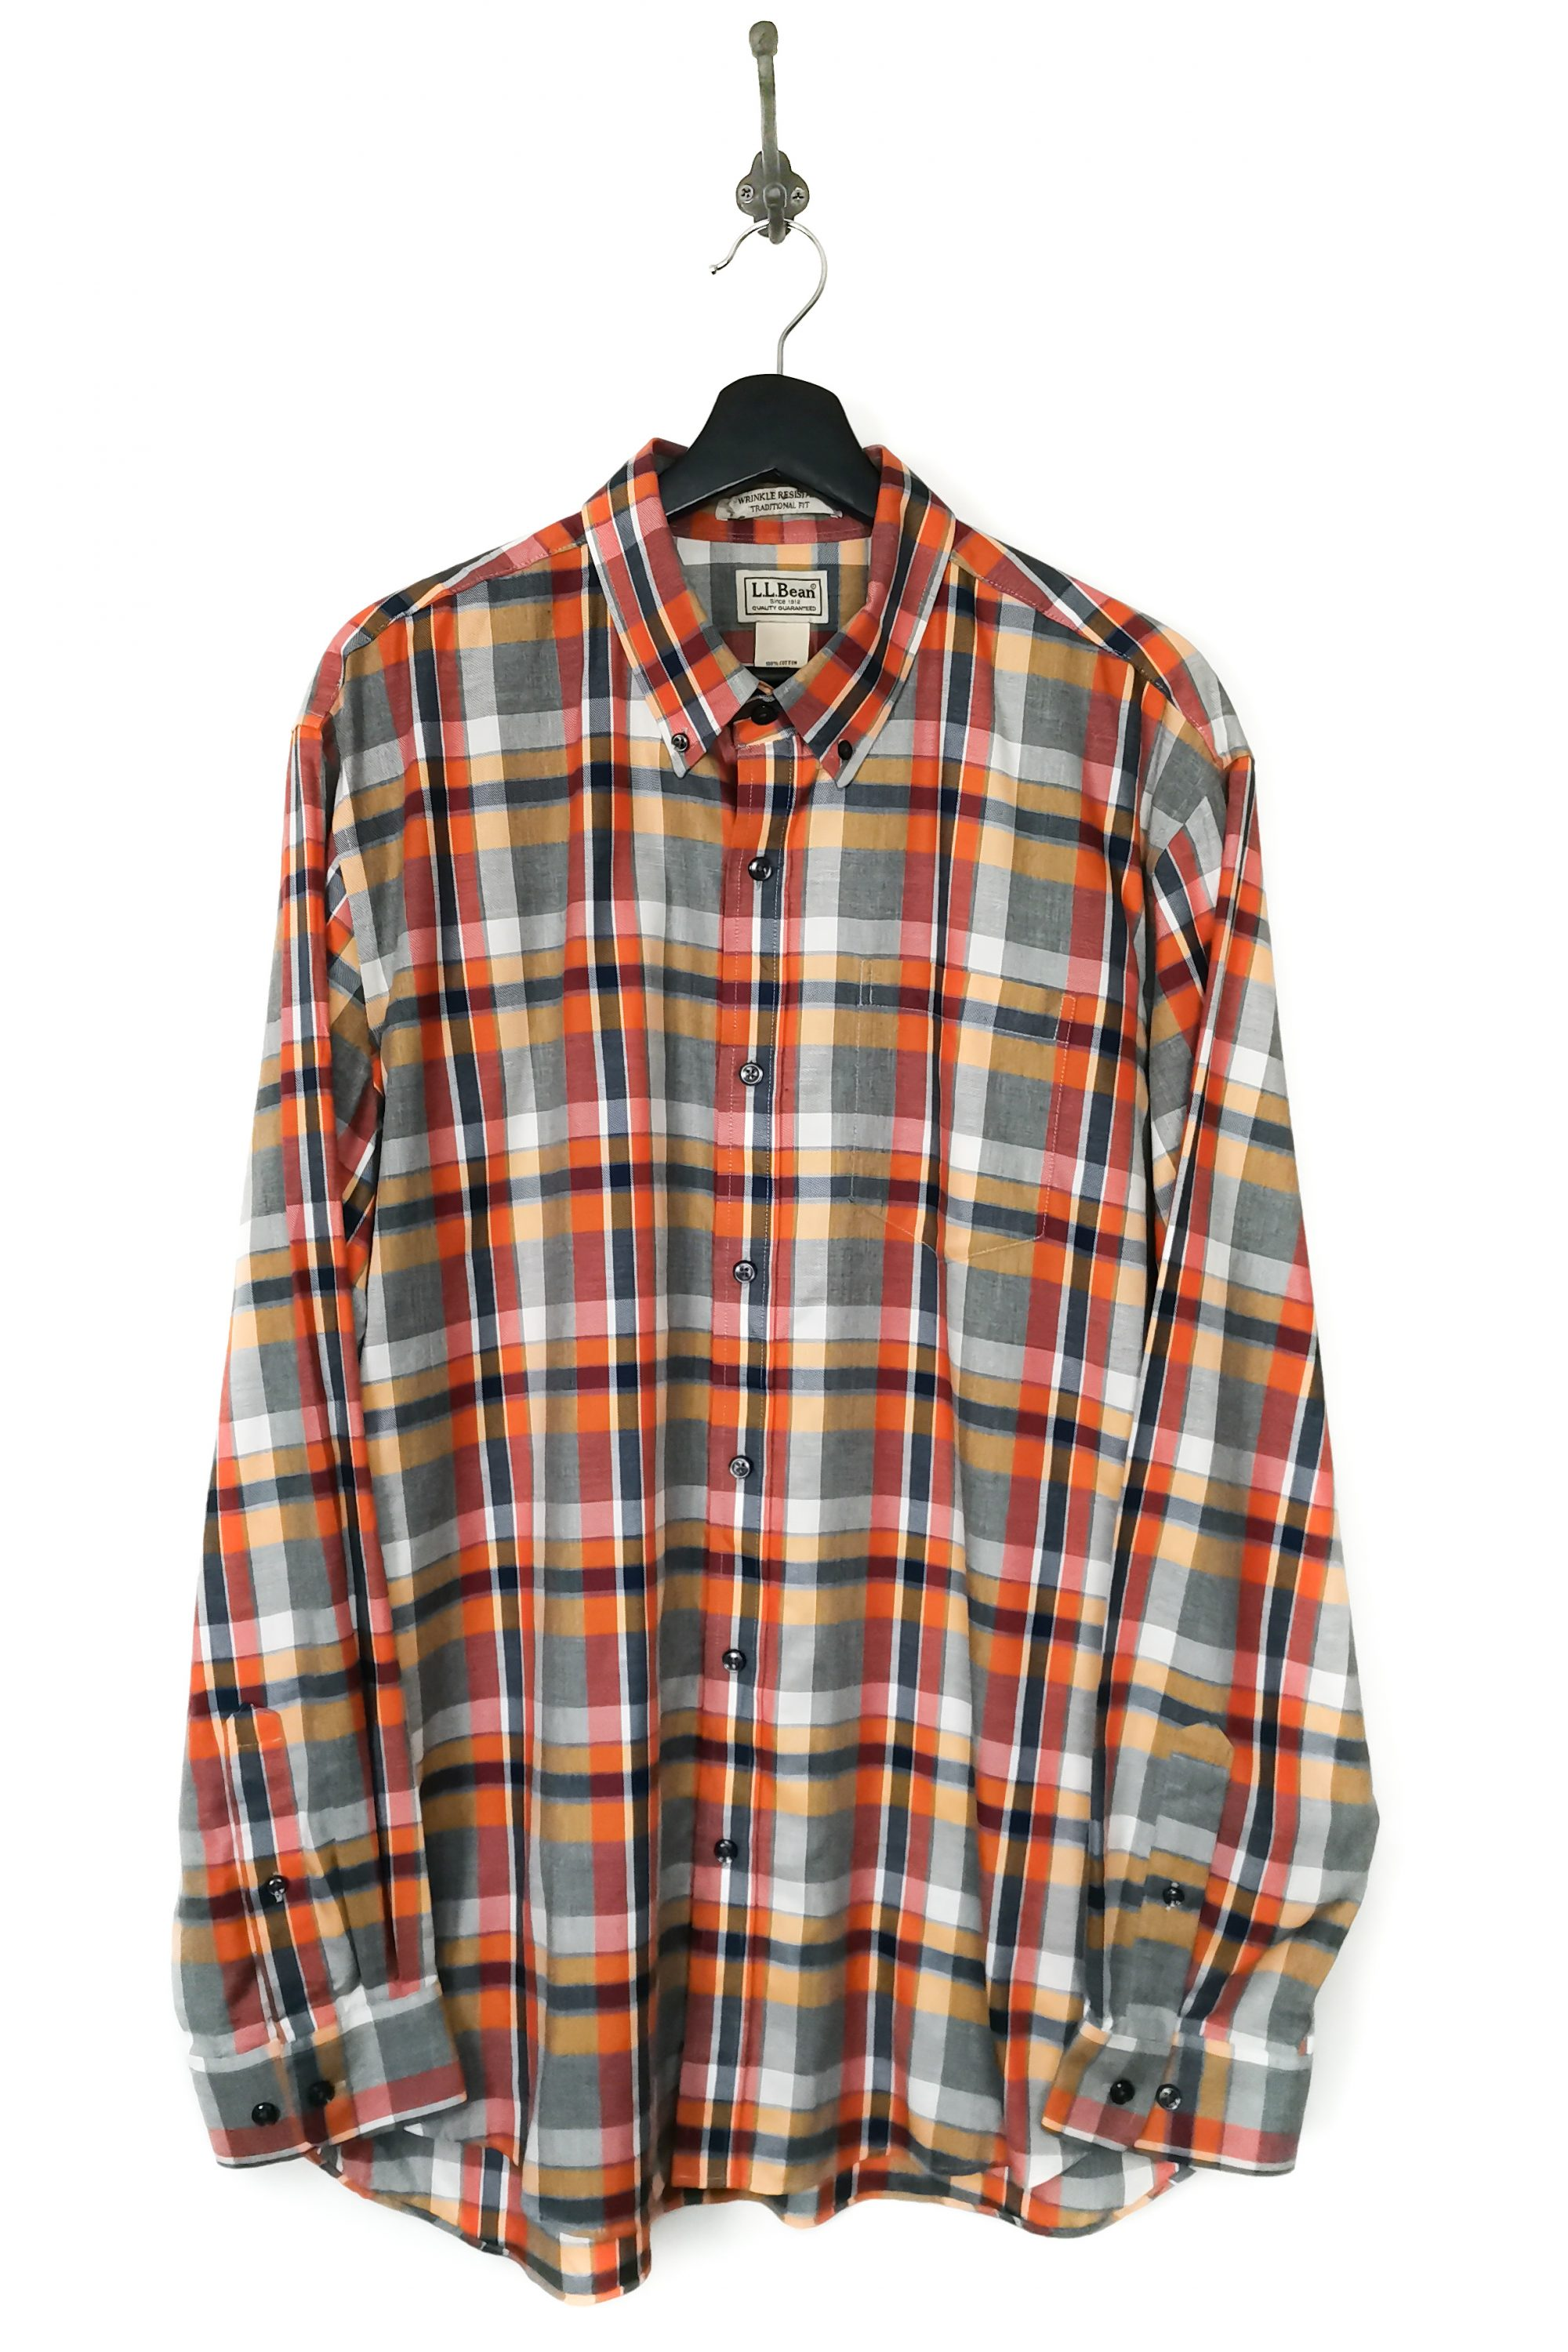 L.L Bean USED Over-Sized Check Shirt-8